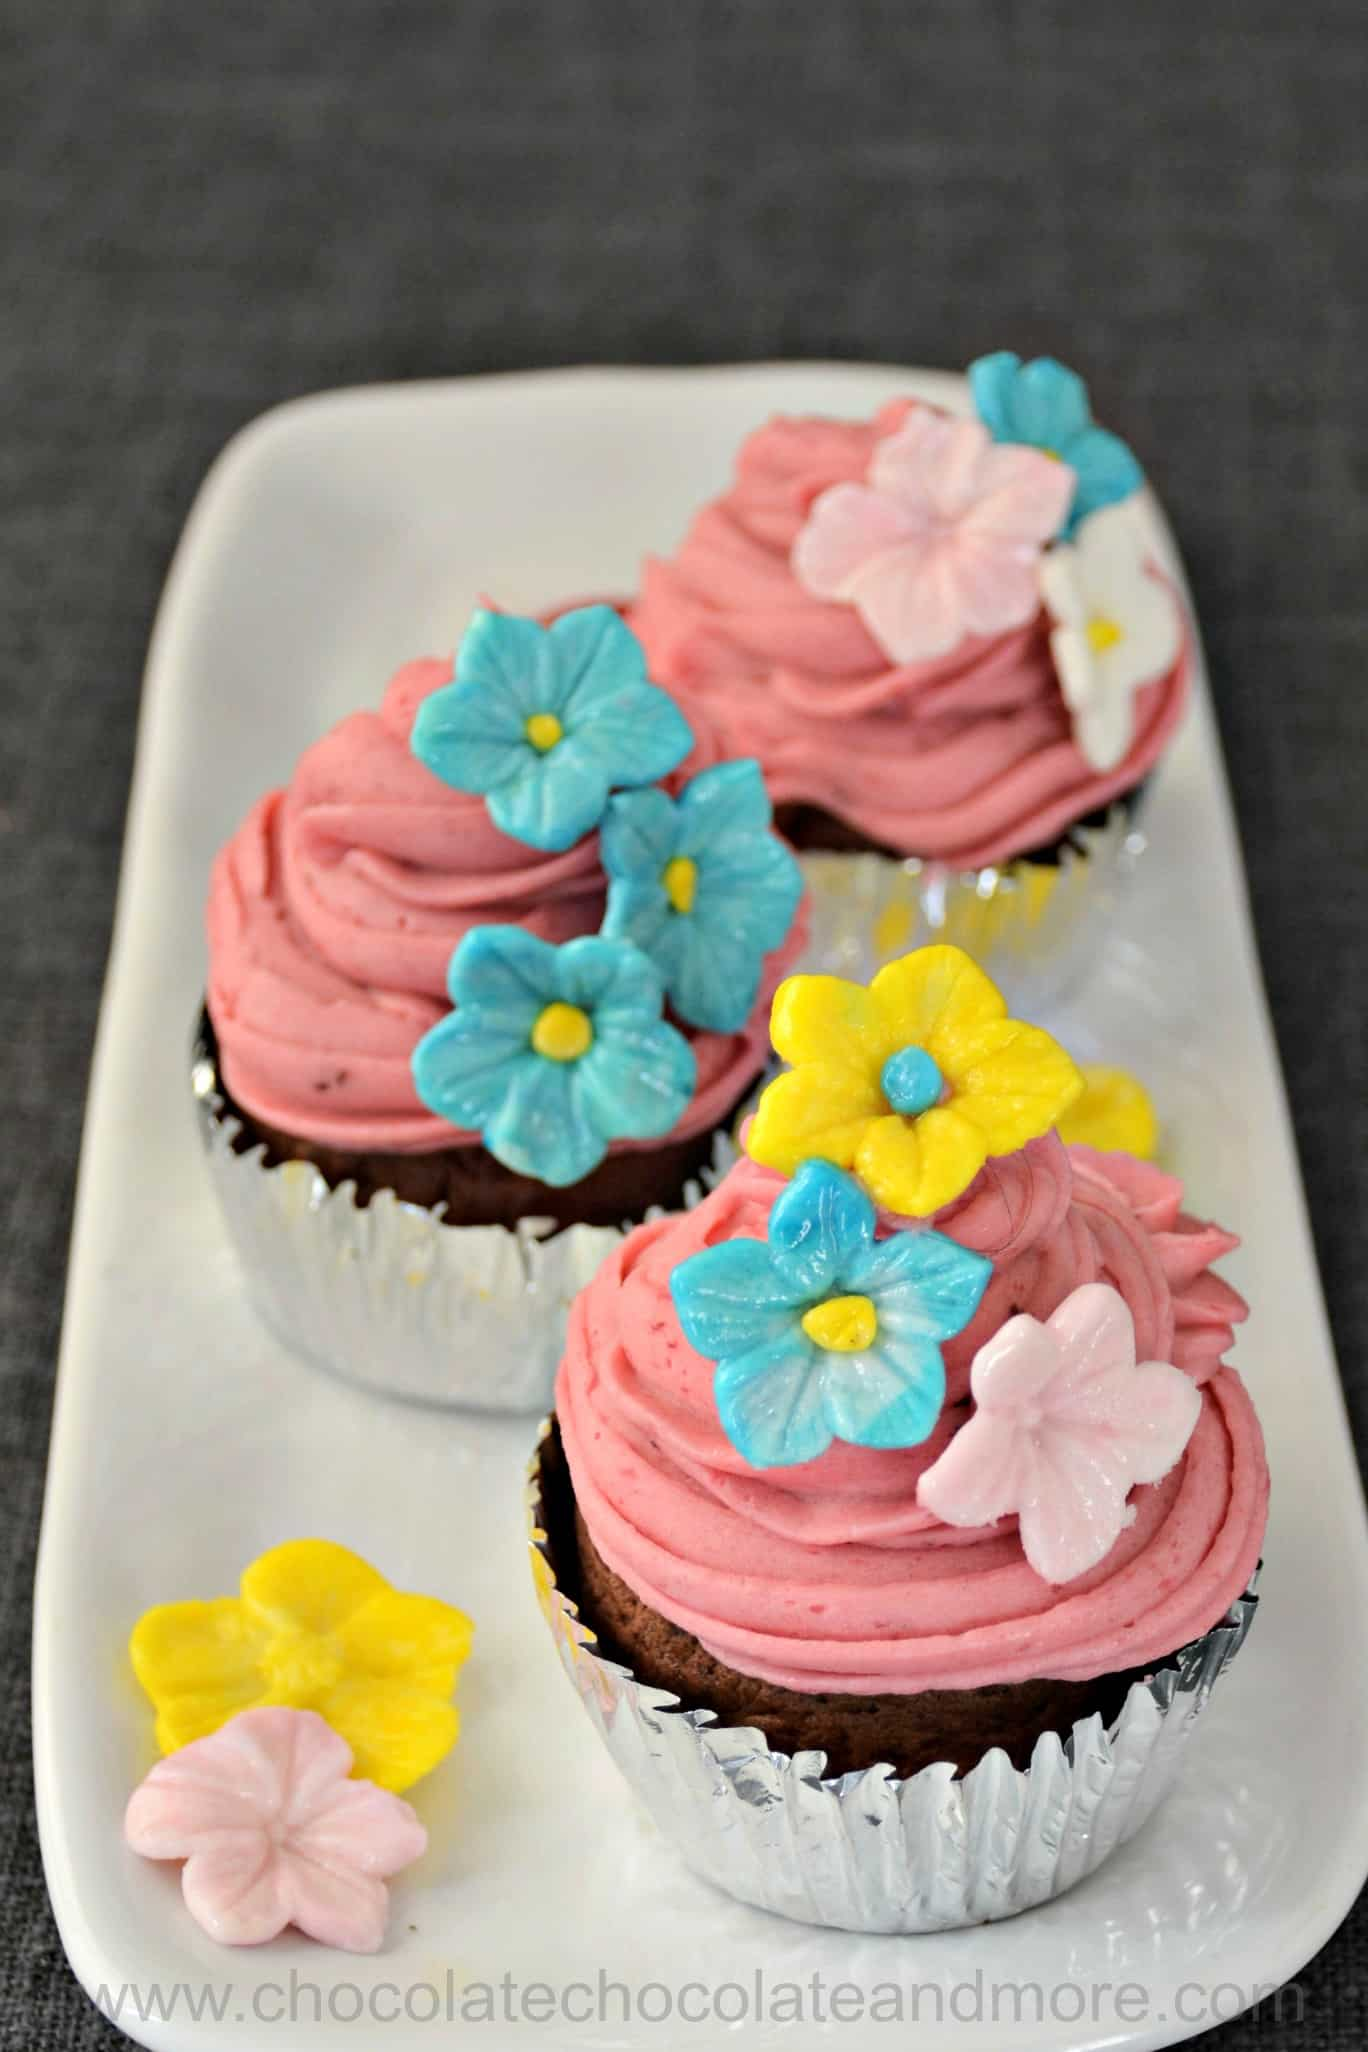 a plate with several cupcakes with purple frosting and delicate flowers made of frosting